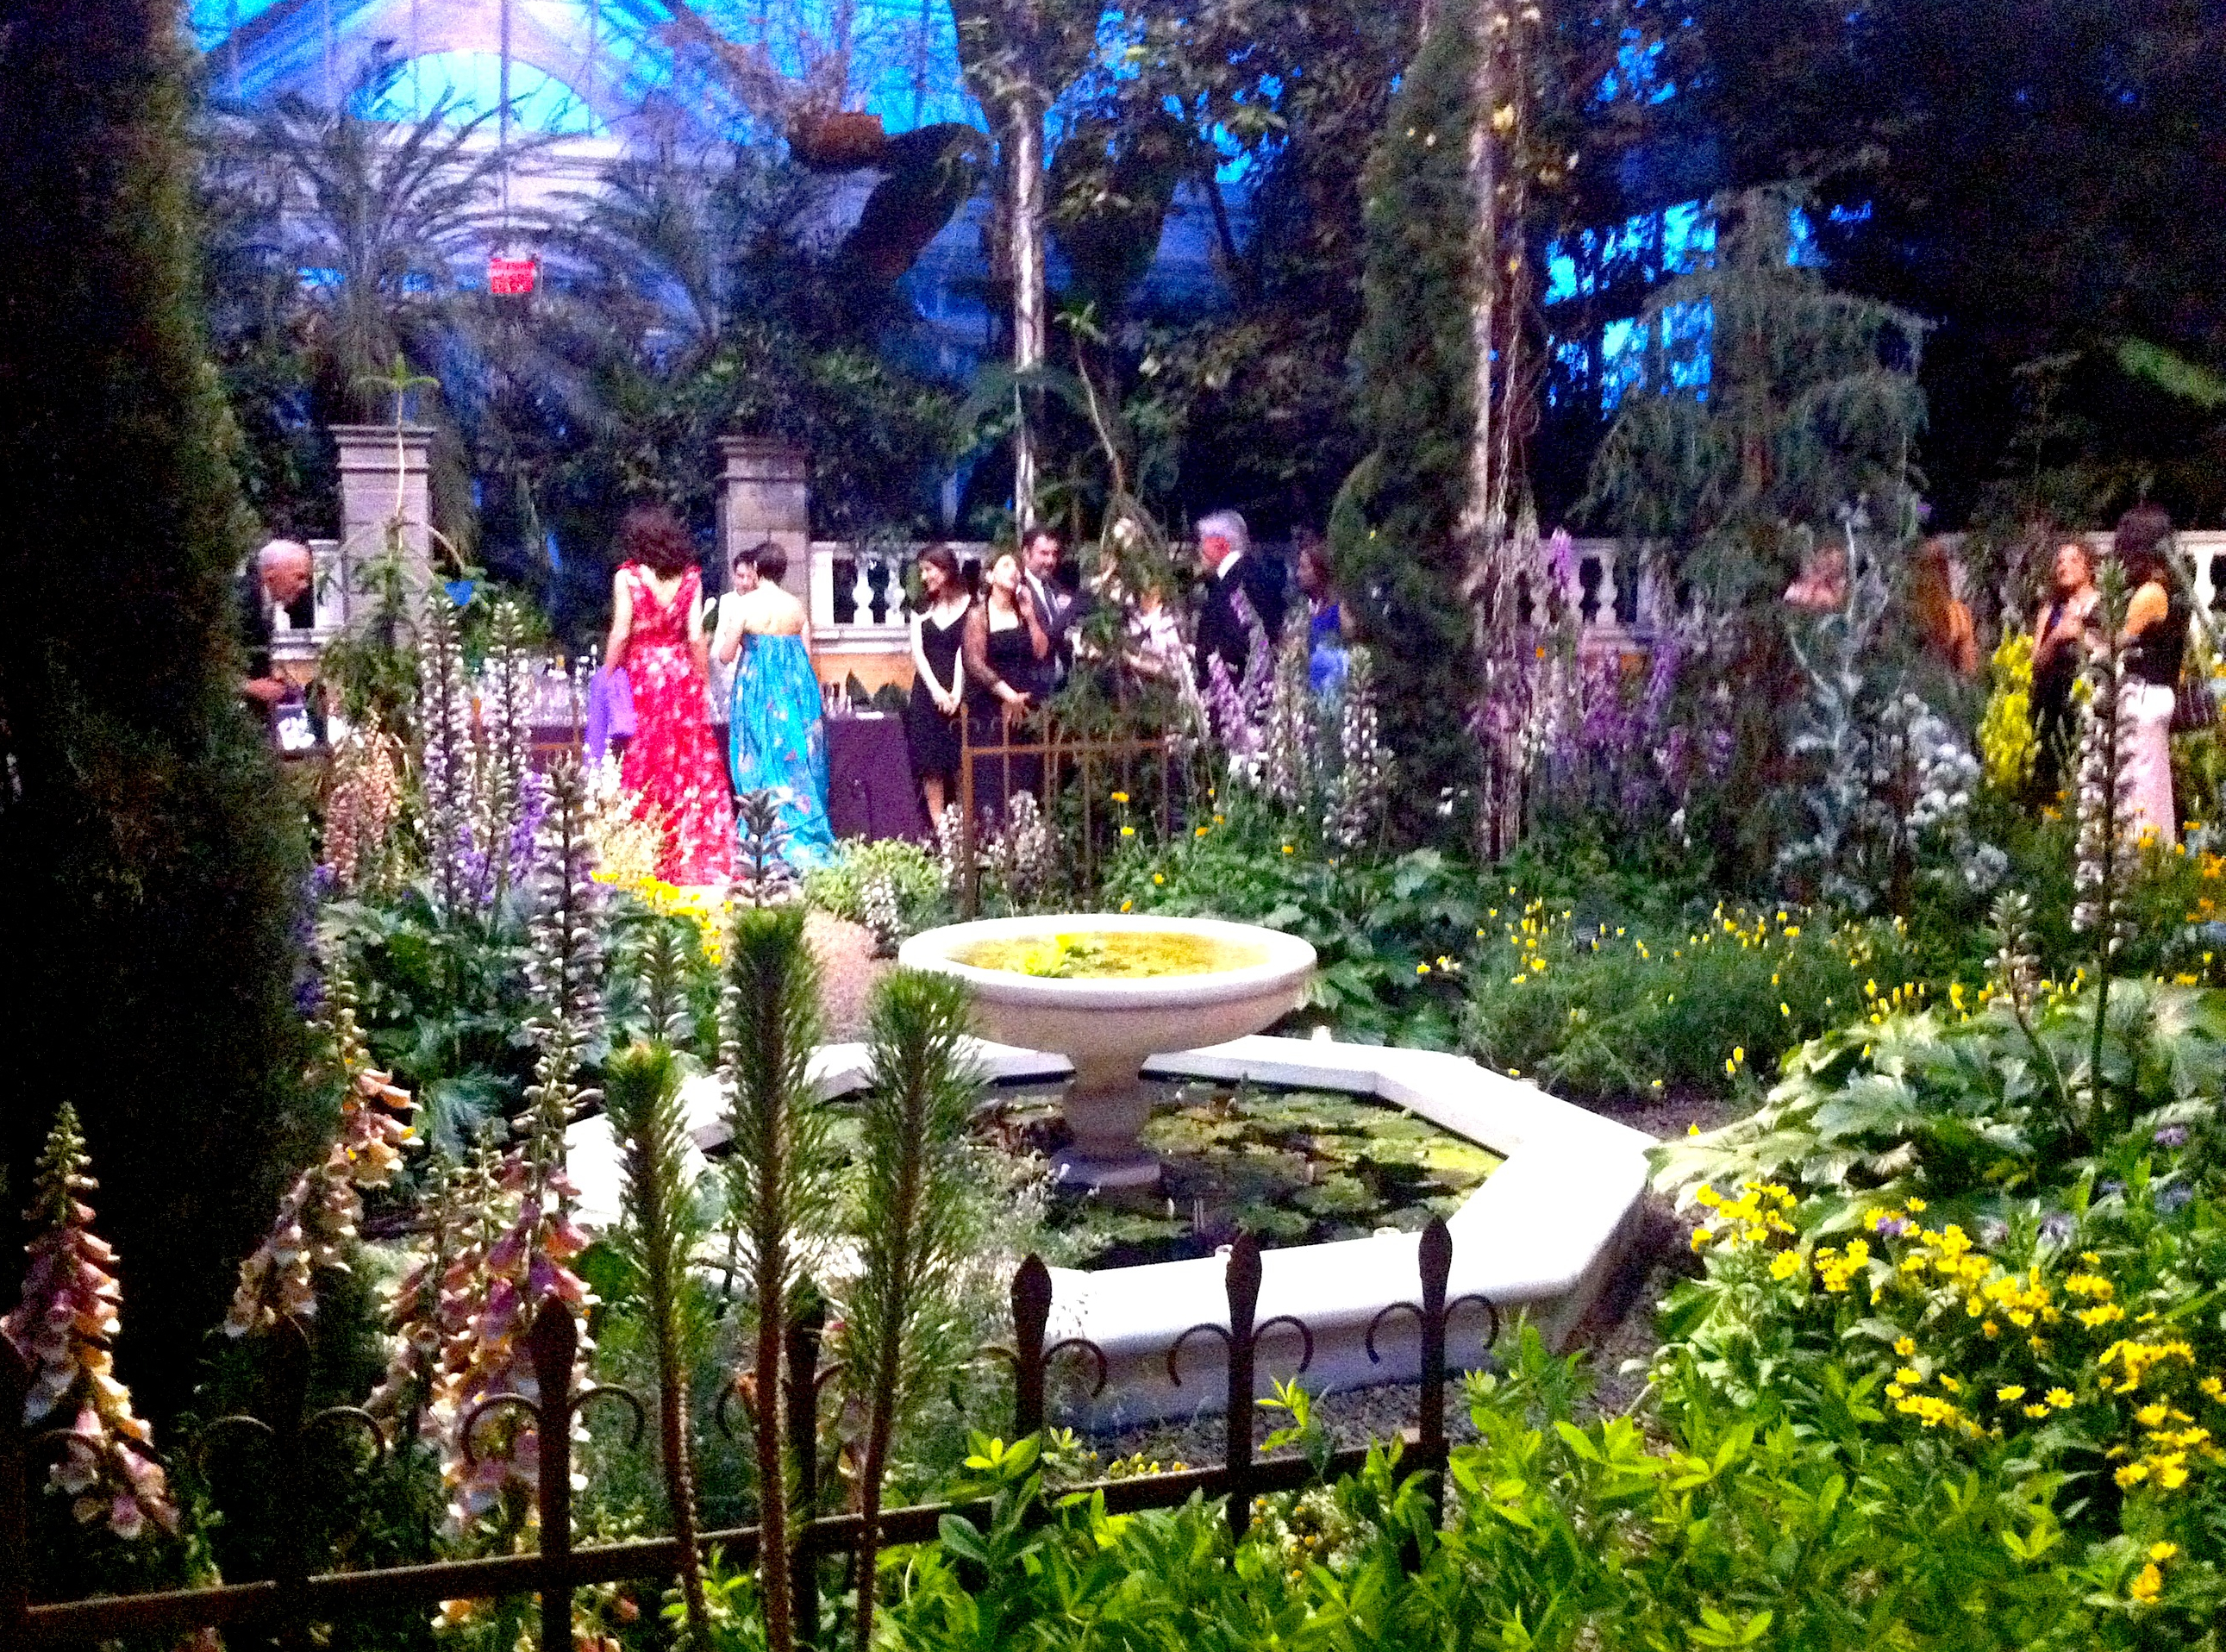 New york botanical garden conservatory ball 2013 an - New york botanical garden wedding ...